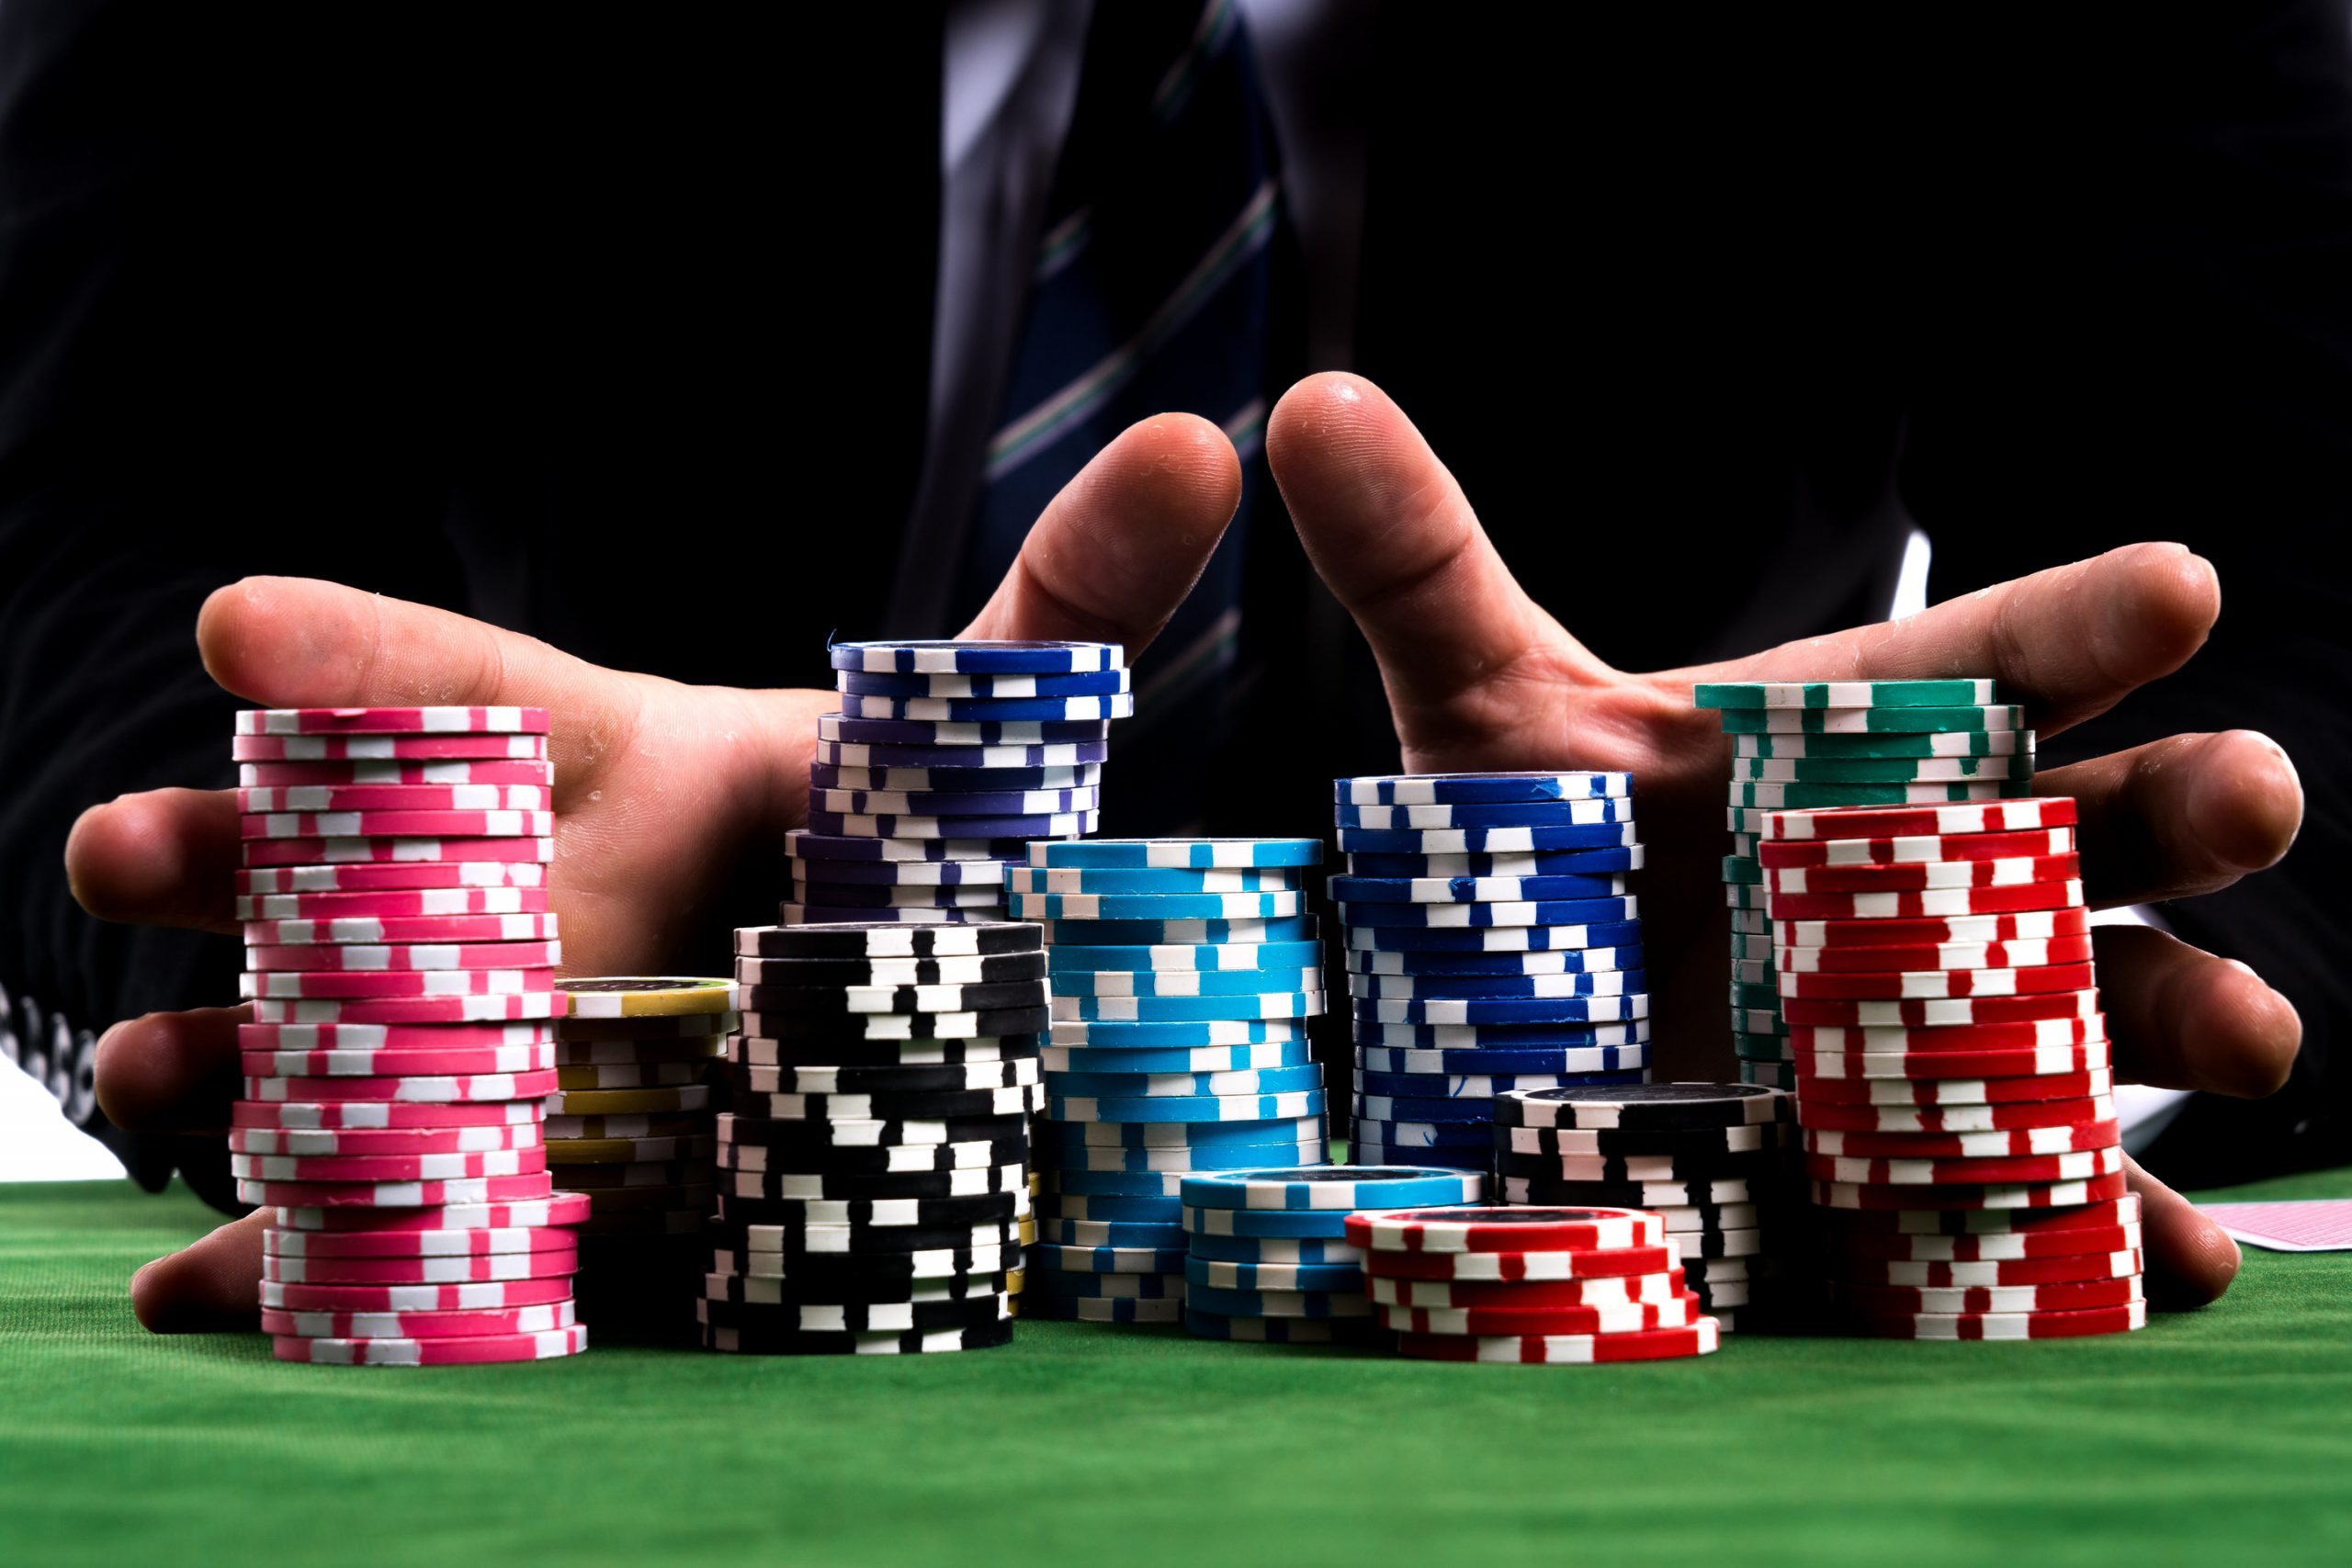 Exactly How To Overview Online Gambling Basics For Rookies